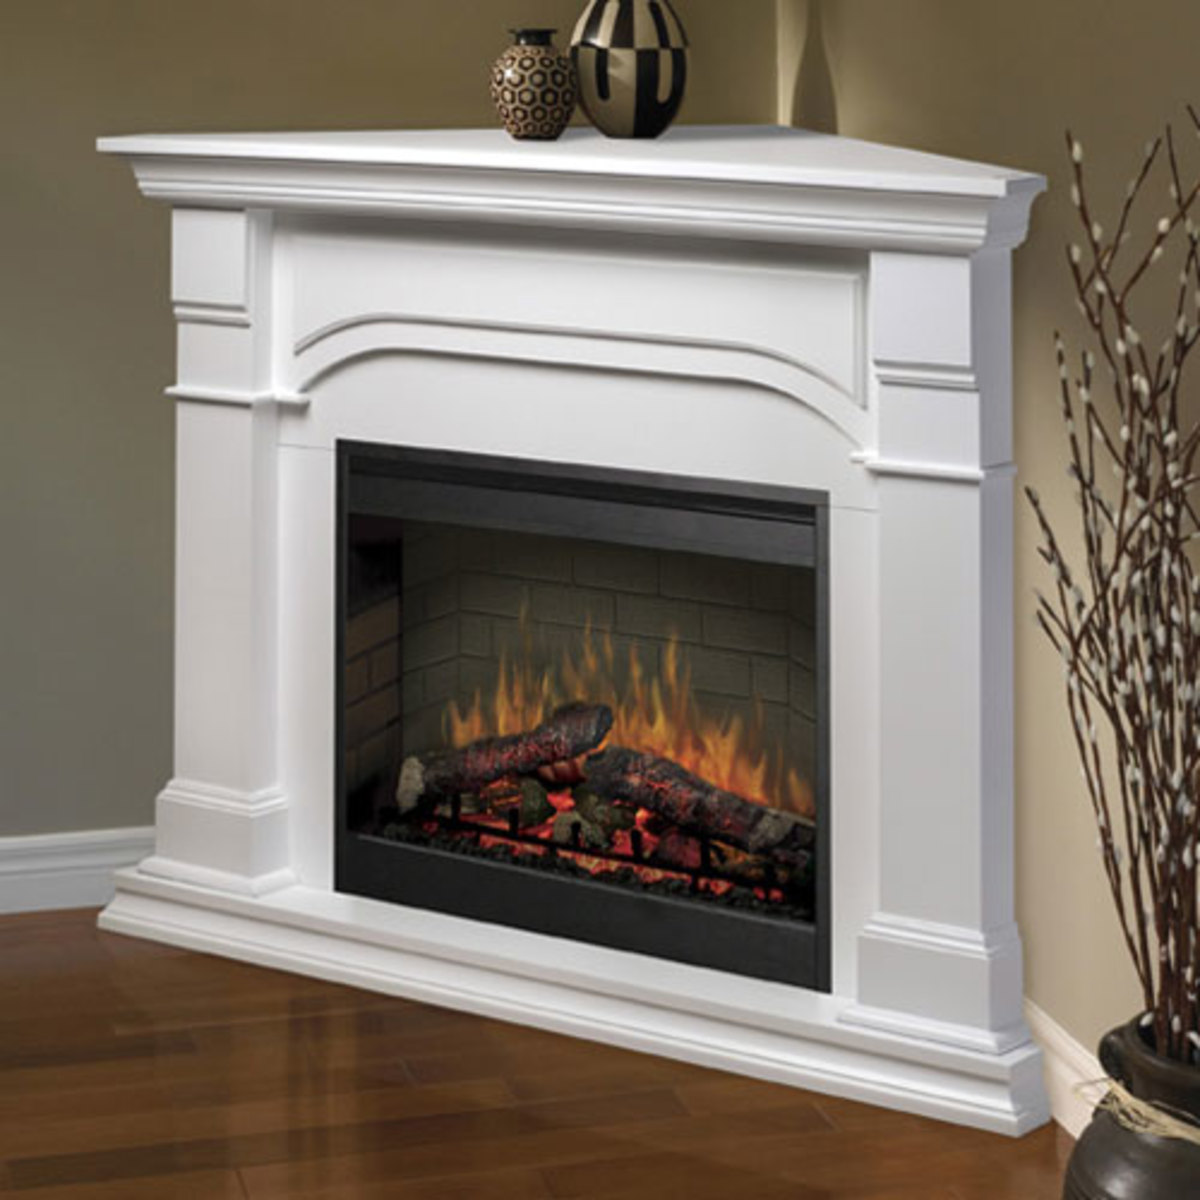 VENT FREE FIREPLACES AMP; VENTLESS GAS FIREPLACES - FREE